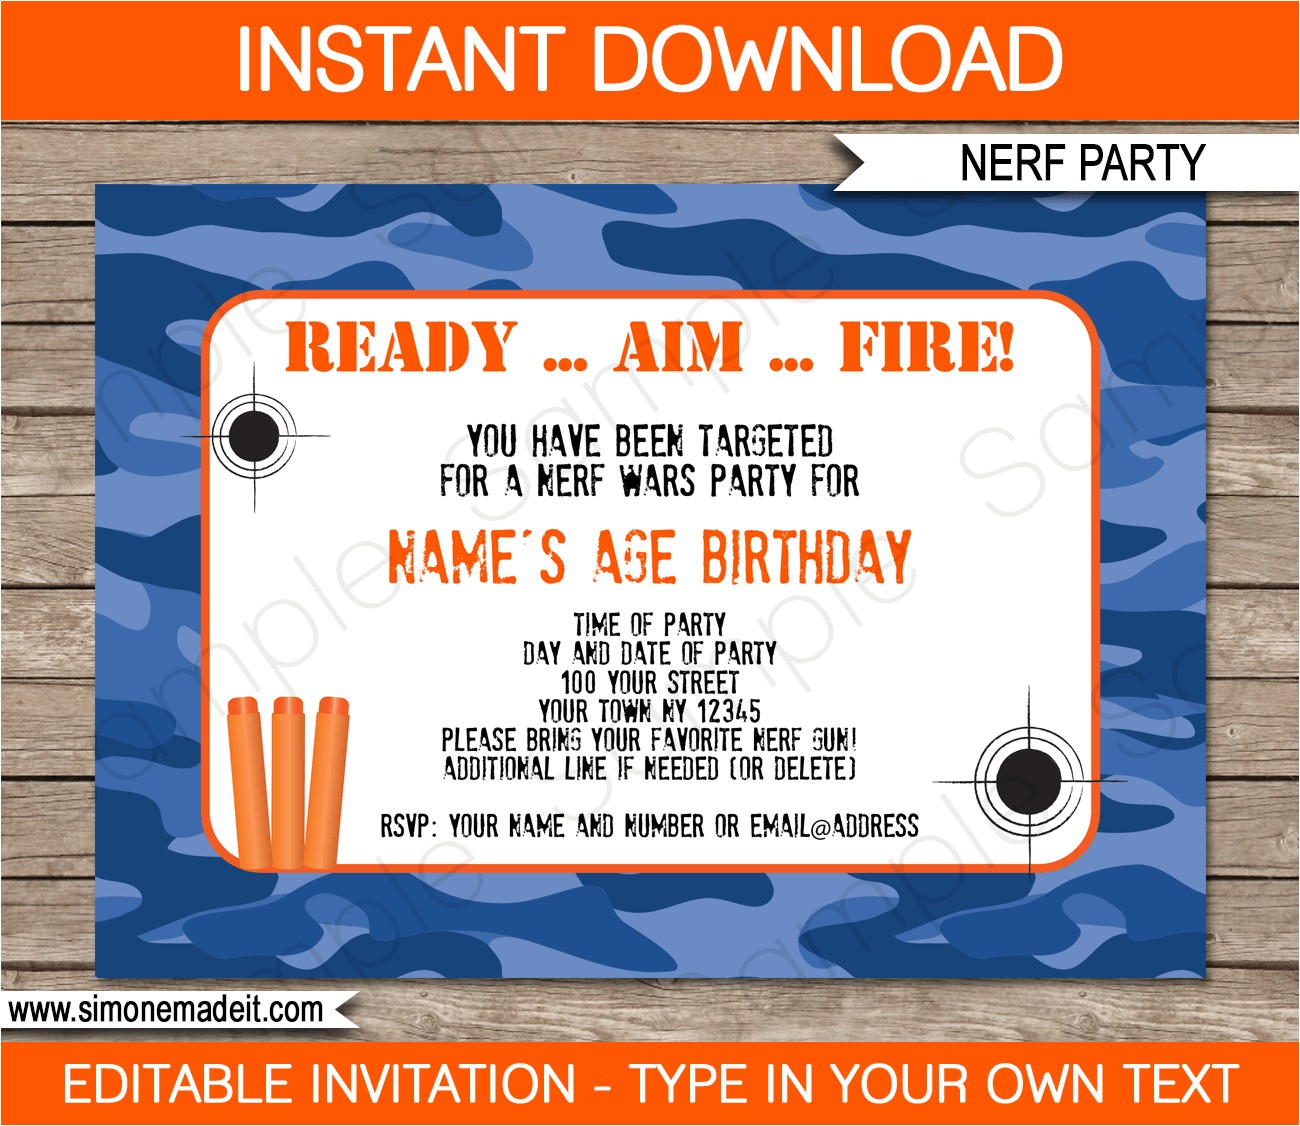 nerf birthday party invitations editable template